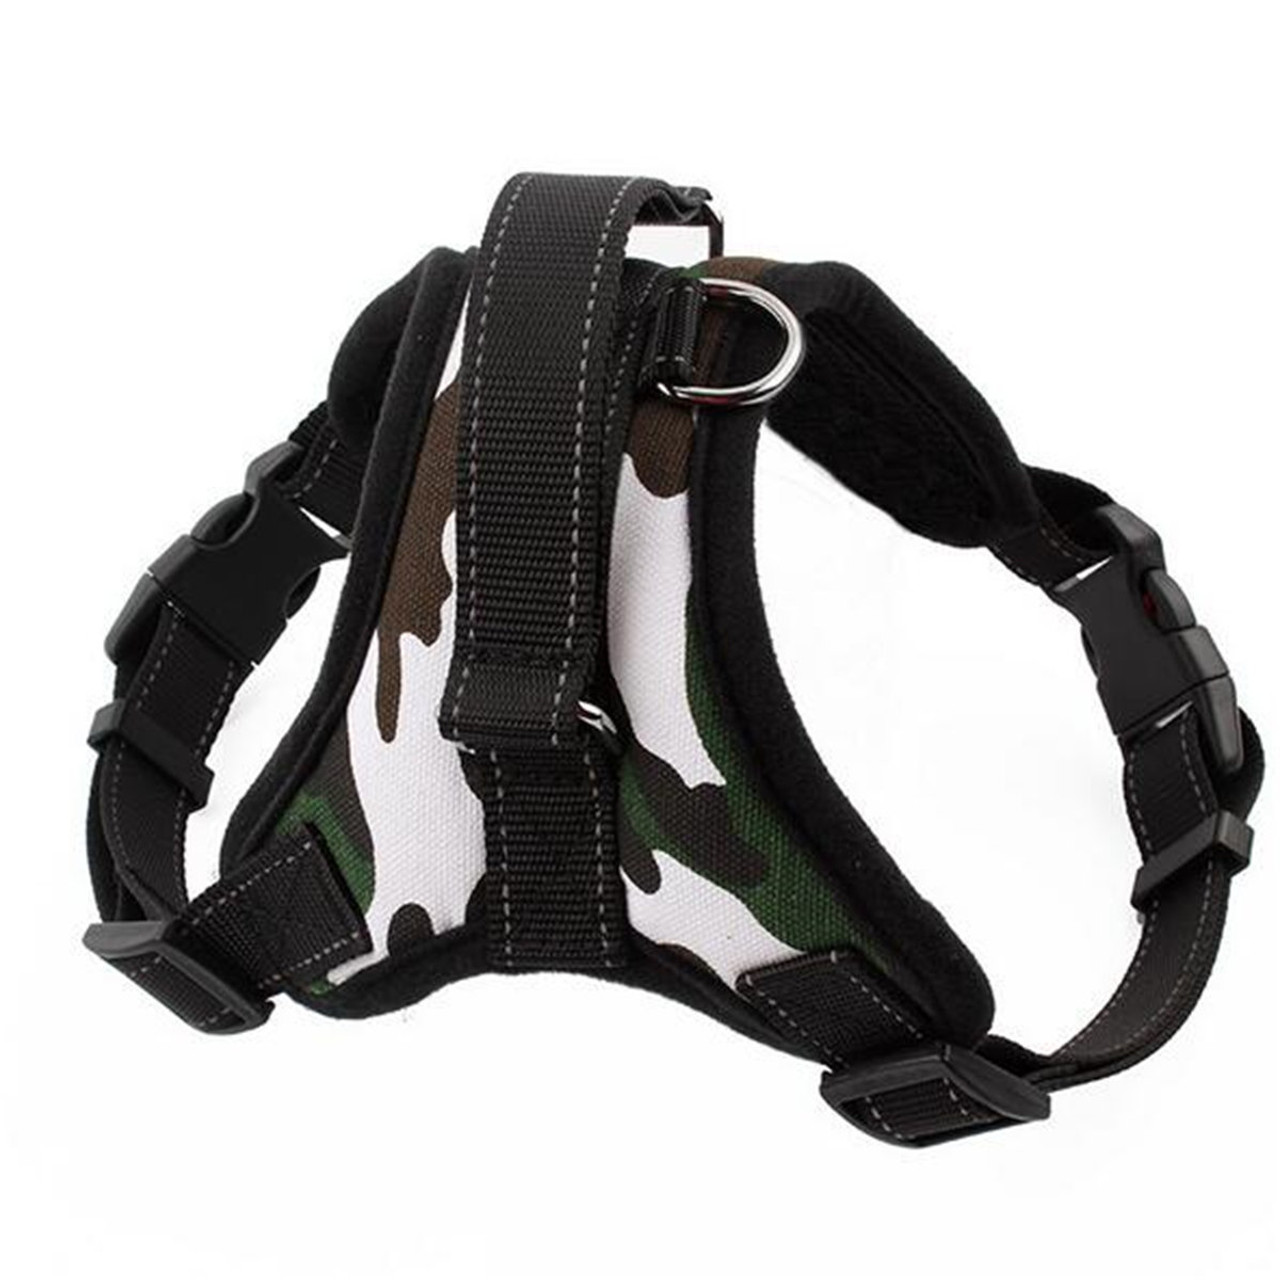 Vest Dog Training Harness dog accessories Dogs Harness Collars High quality